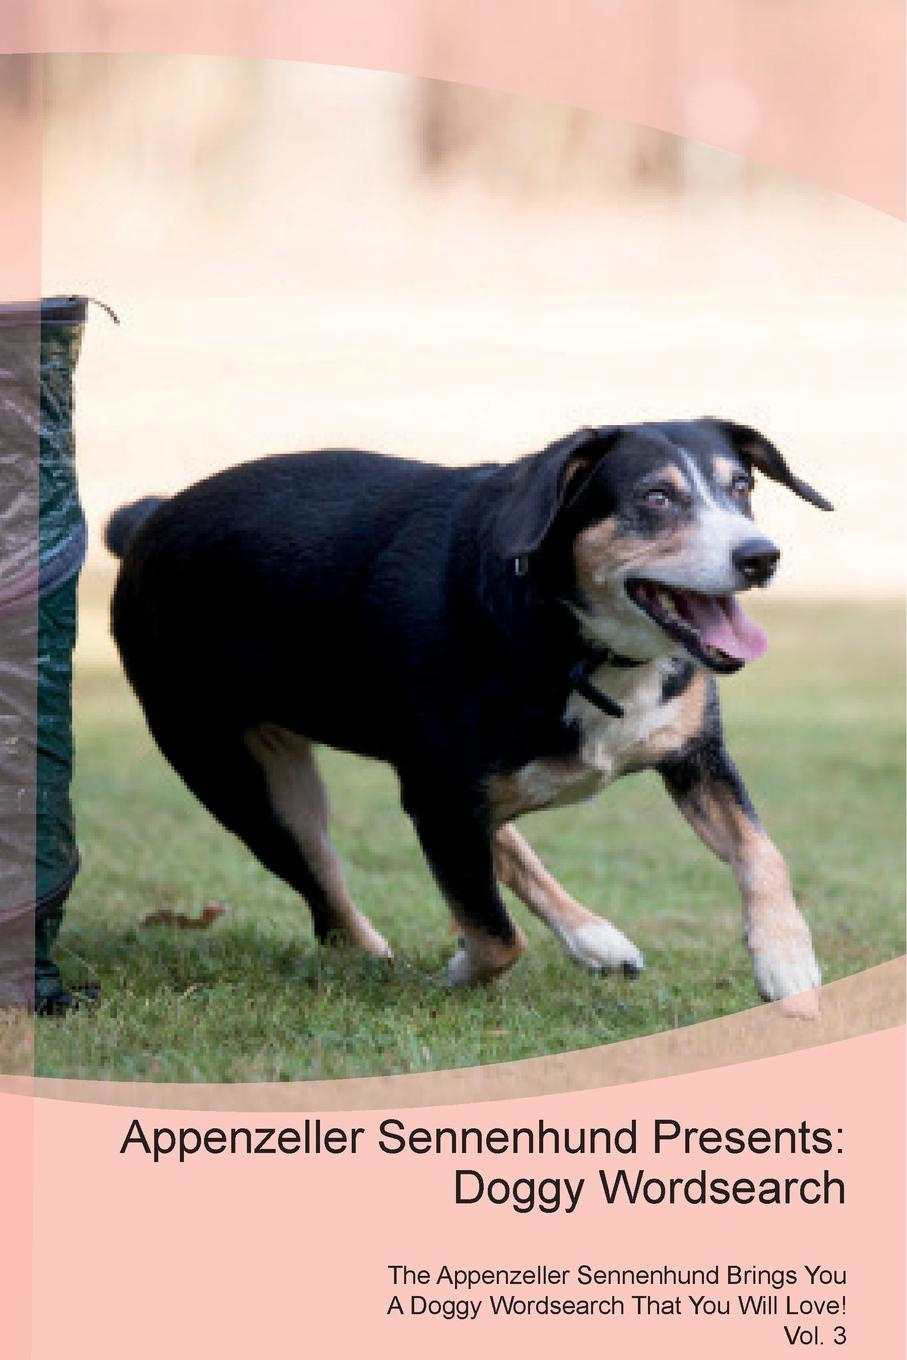 Doggy Puzzles Appenzeller Sennenhund Presents. Wordsearch The Brings You A That Will Love! Vol. 3